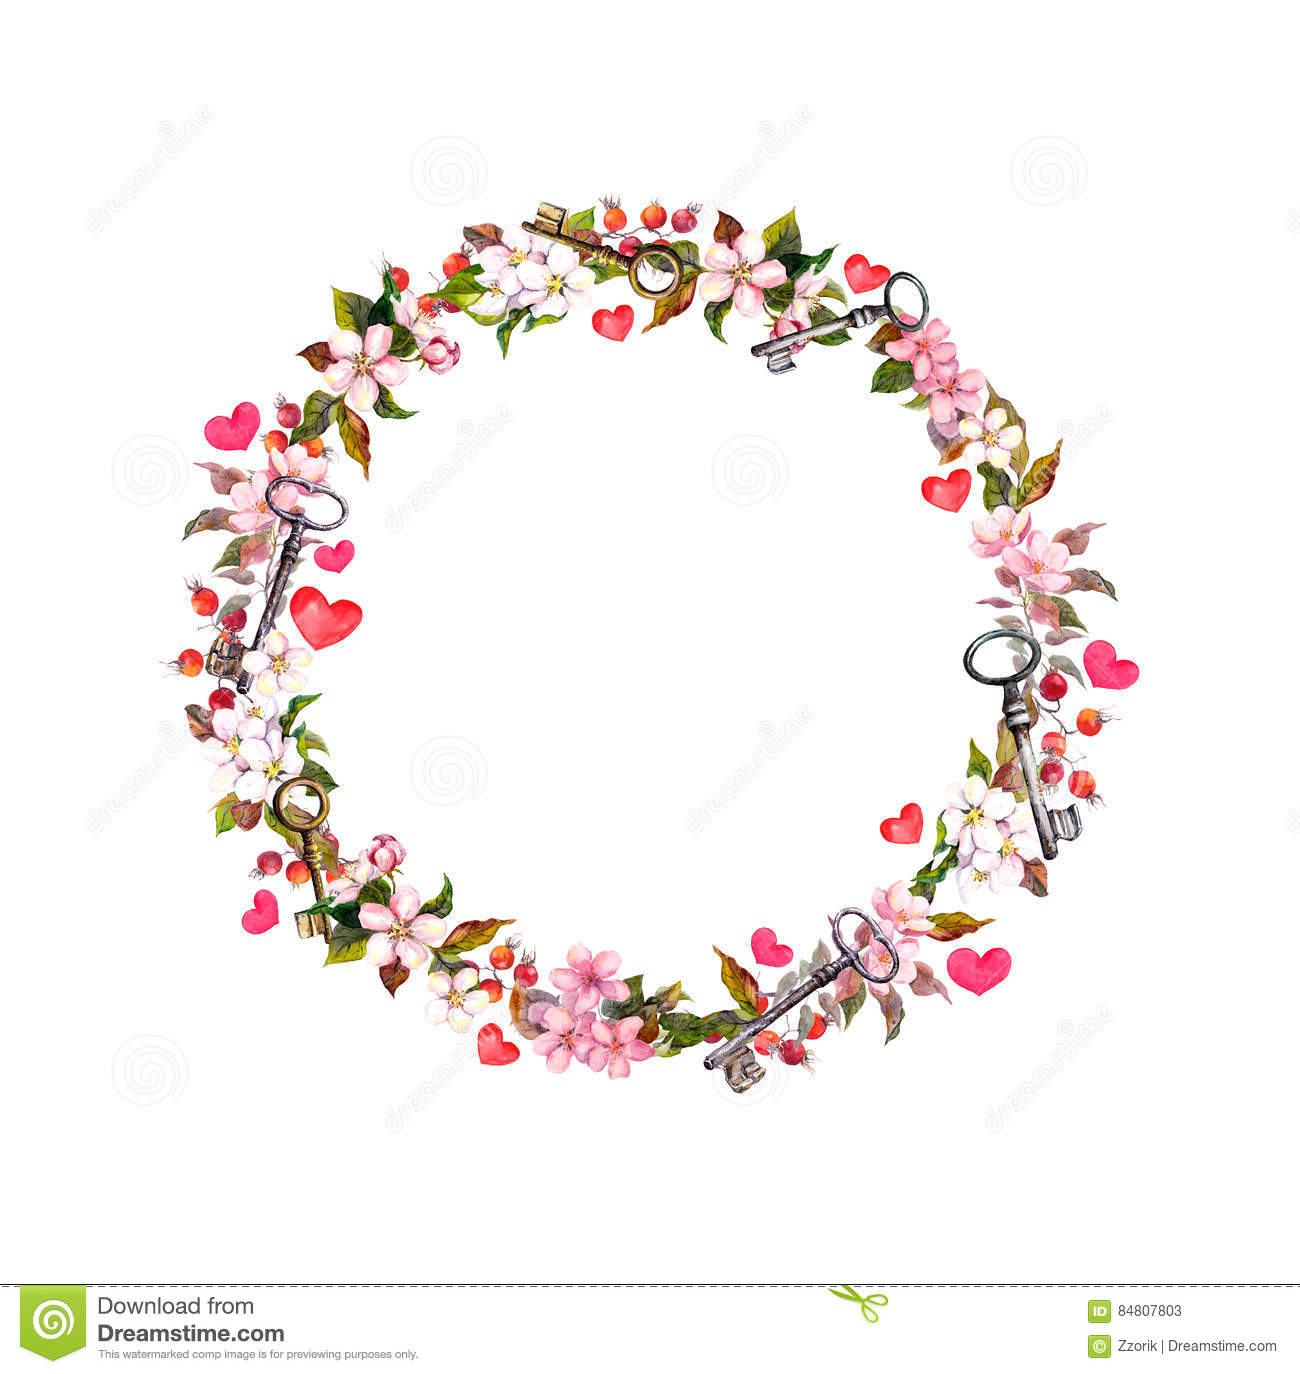 Floral wreath with pink flowers hearts keys watercolor circle download floral wreath with pink flowers hearts keys watercolor circle border for valentine mightylinksfo